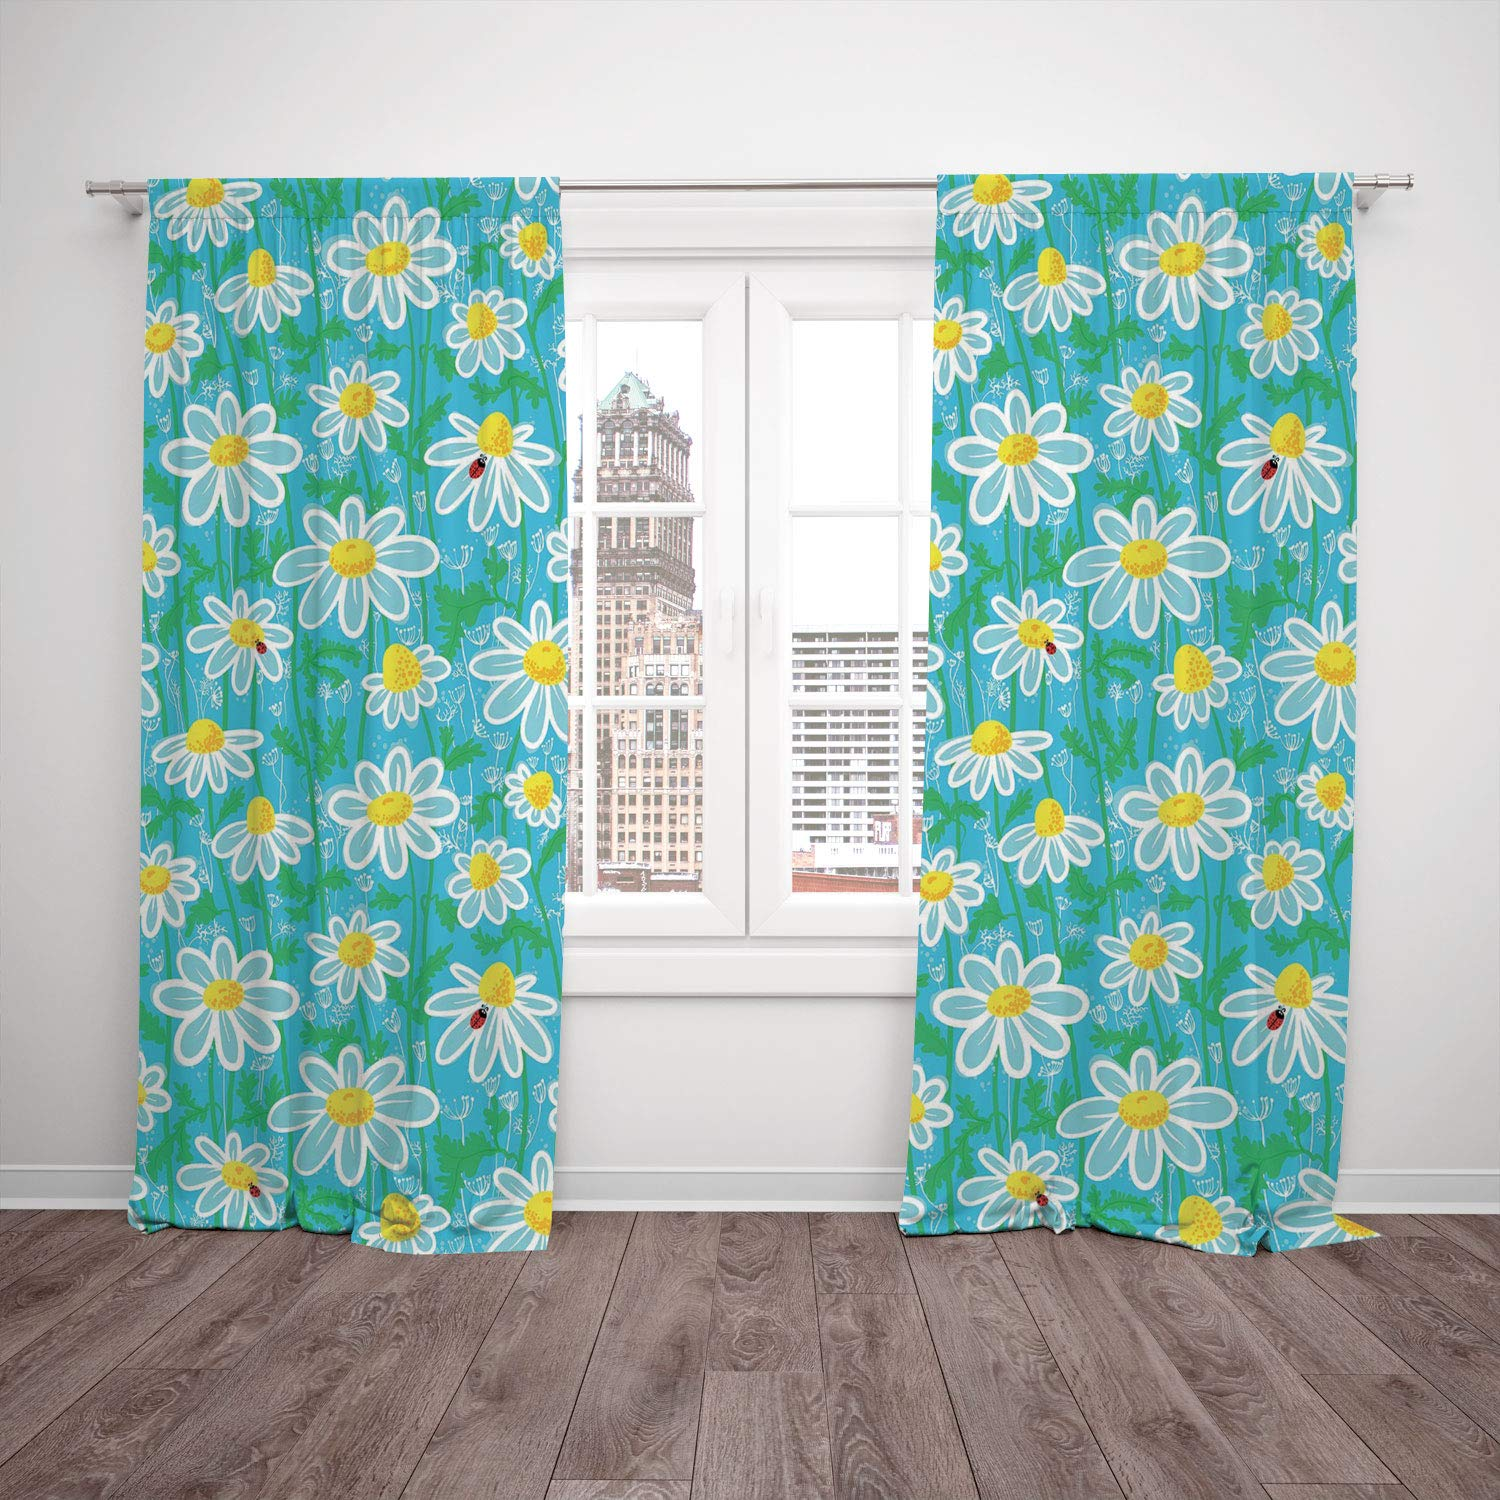 iPrint 2 Panel Set Window Drapes Kitchen Curtains,Yellow and Blue Meadow Art Pattern with Ladybirds and Chamomile Daisy Blossoms Aqua White Marigold,for Bedroom Living Room Dorm Kitchen Cafe